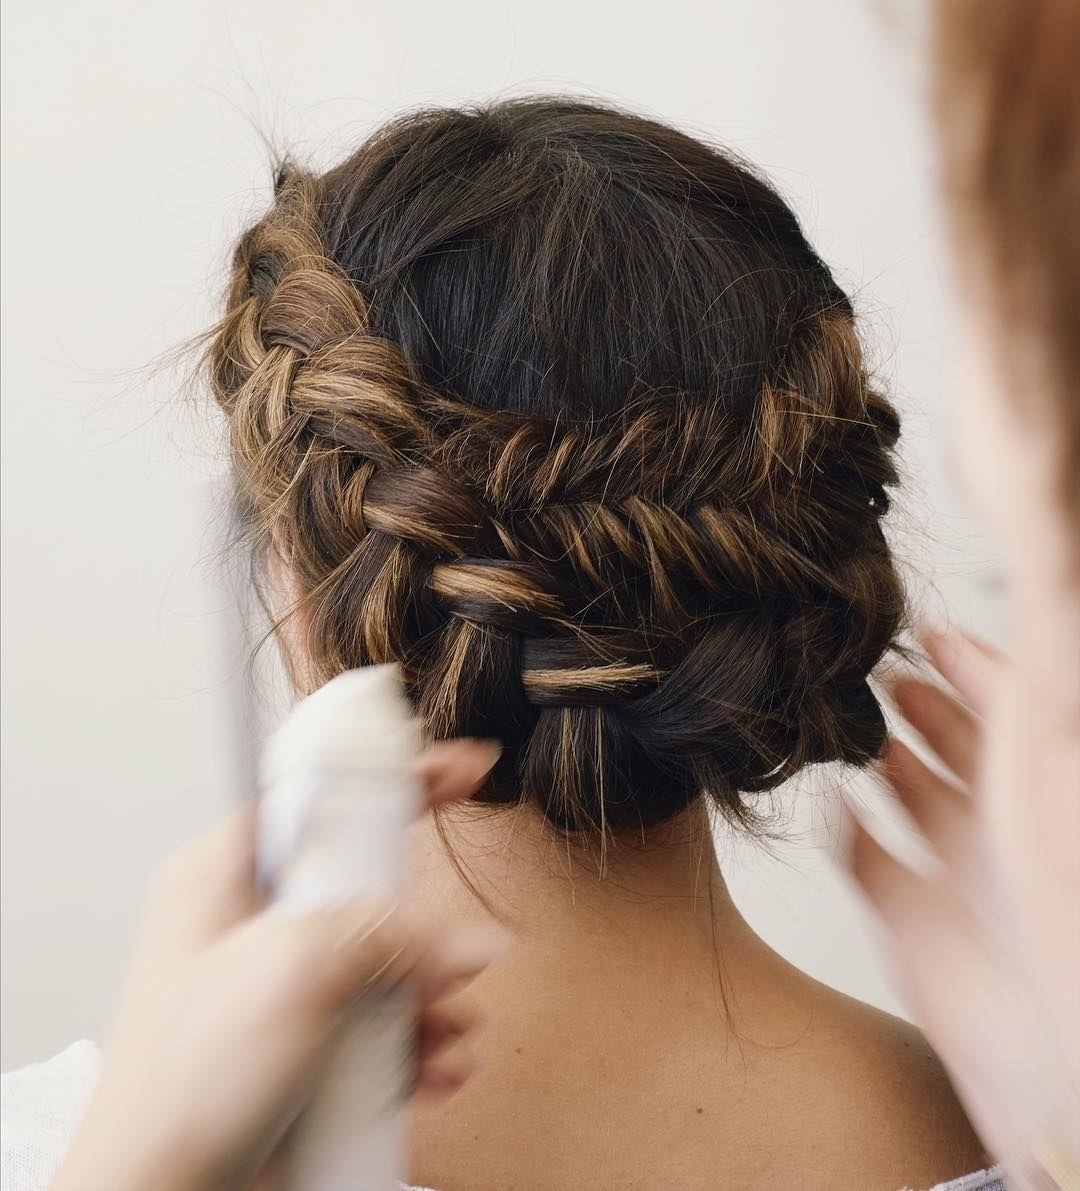 Brides In Well Known Double French Braid Crown Ponytail Hairstyles (View 18 of 20)